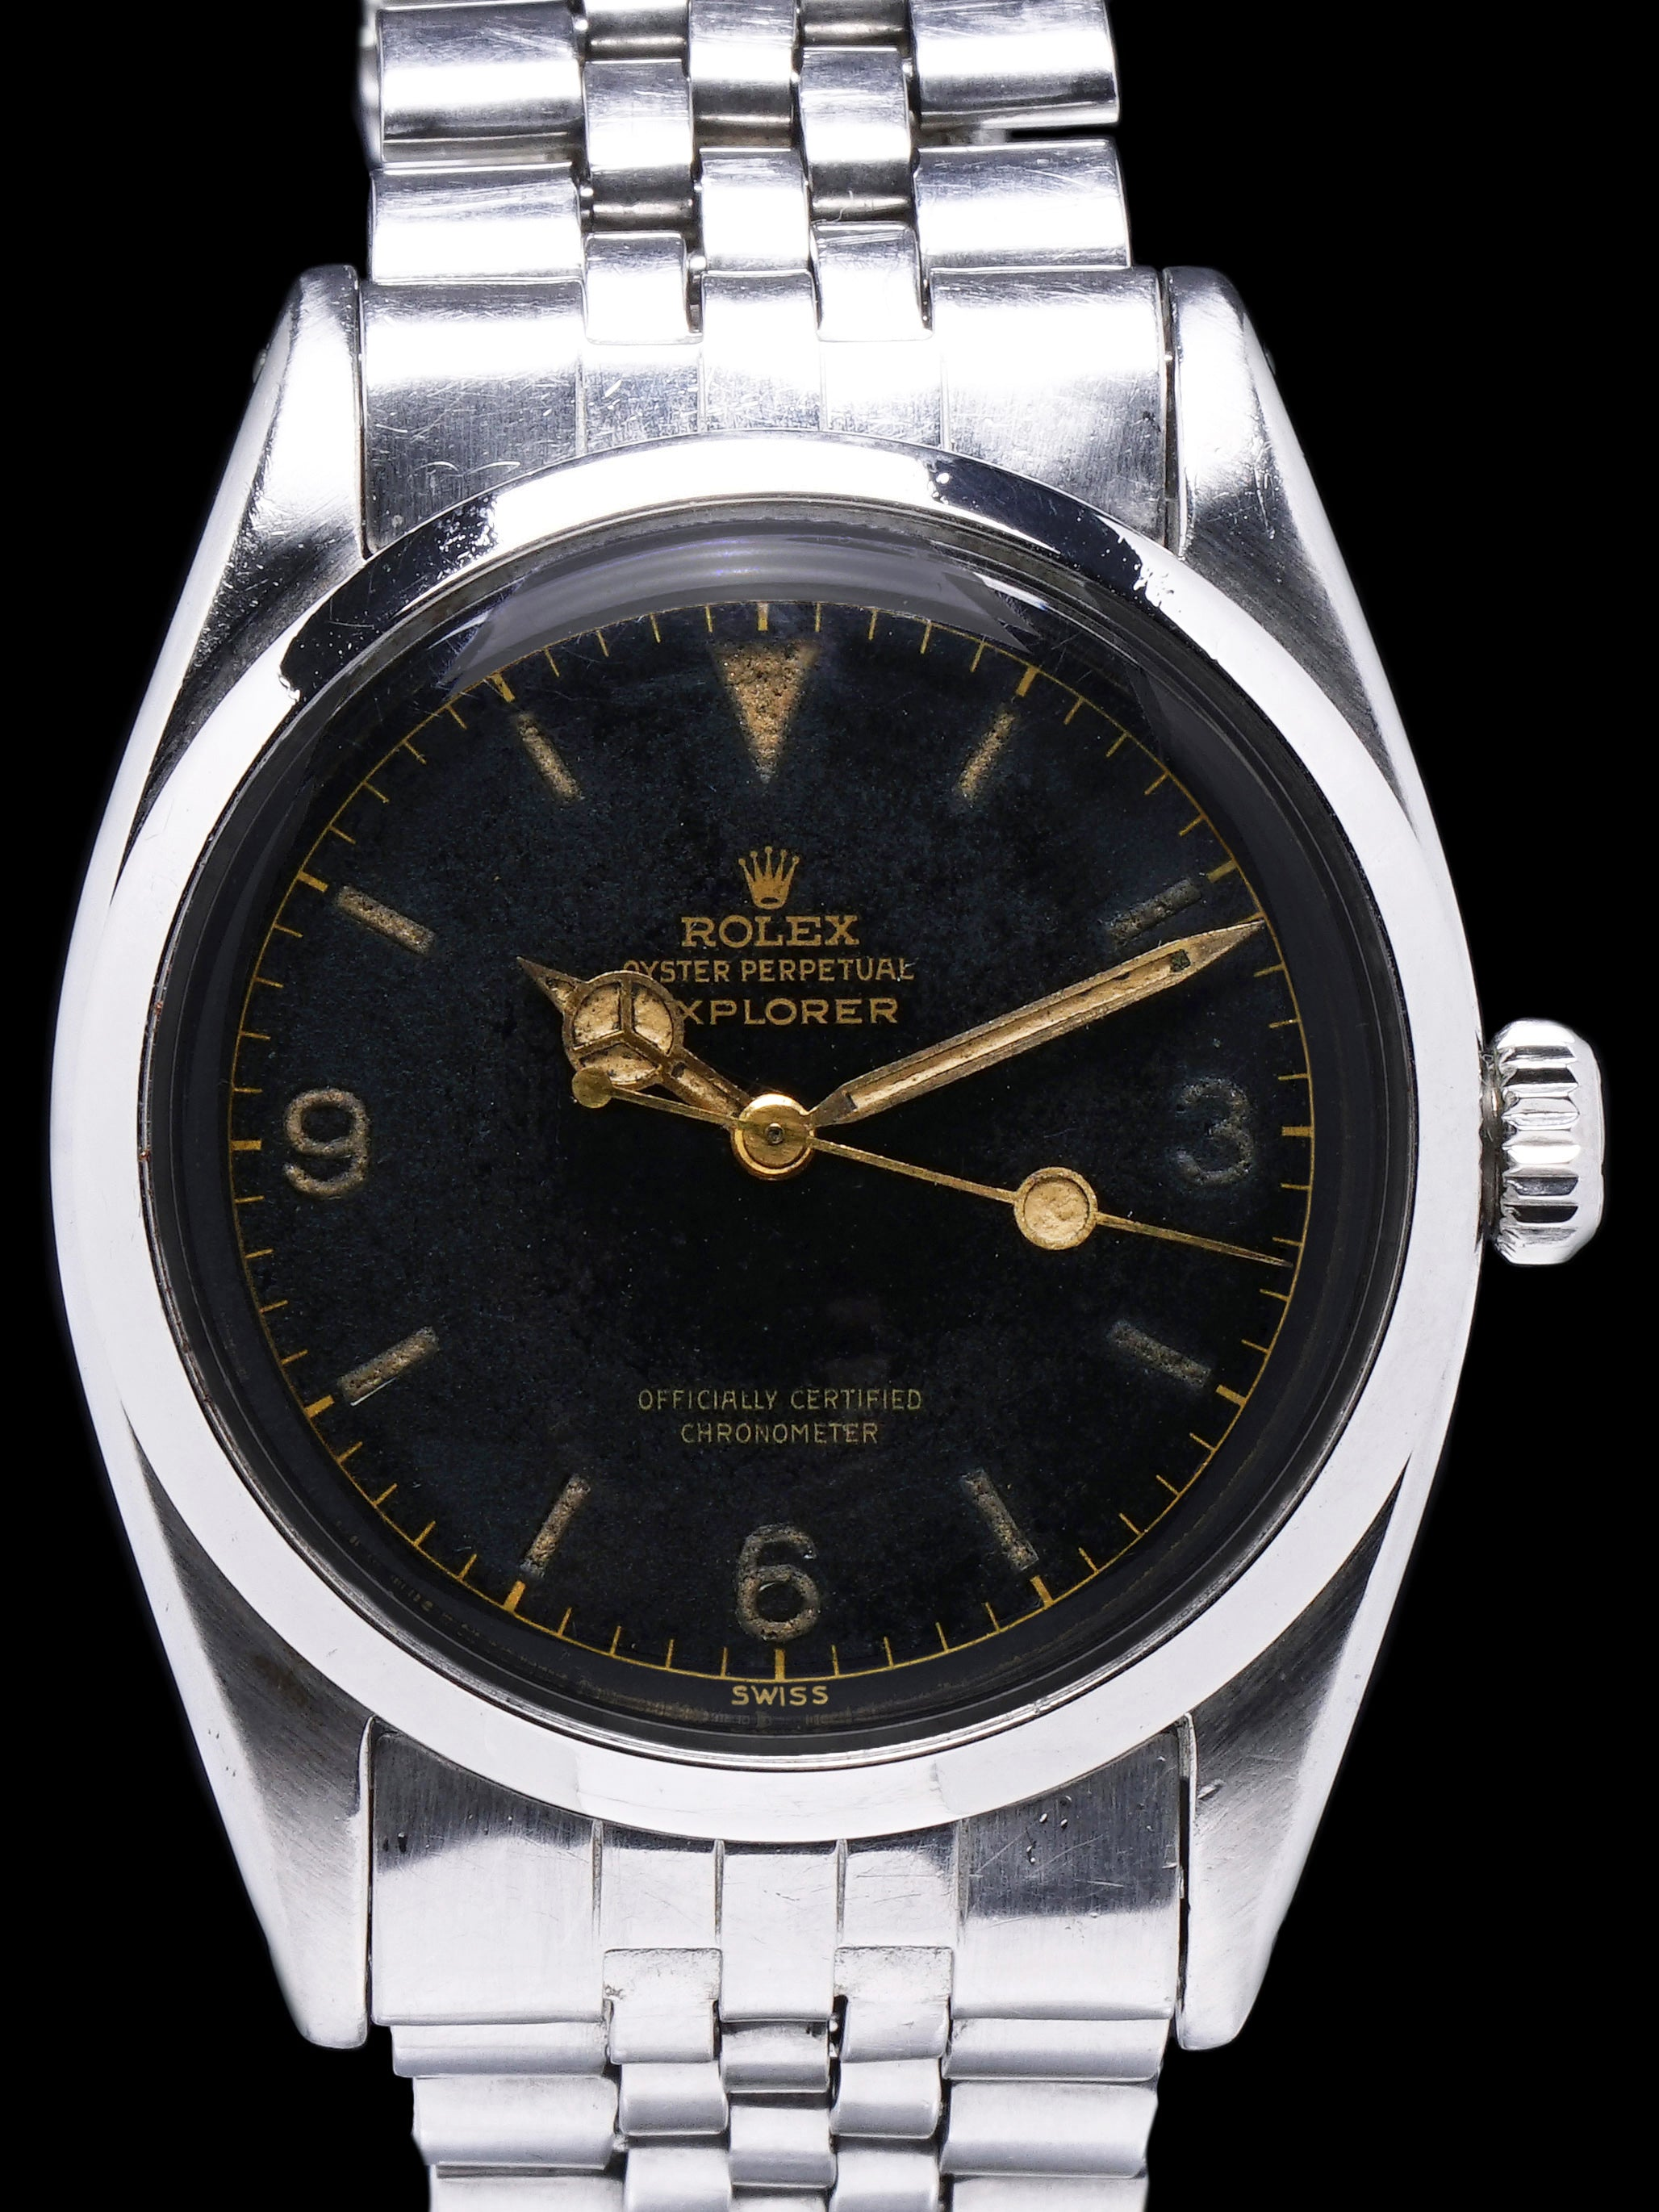 1956 Rolex Explorer I (Ref. 6610) GILT Chapter Ring